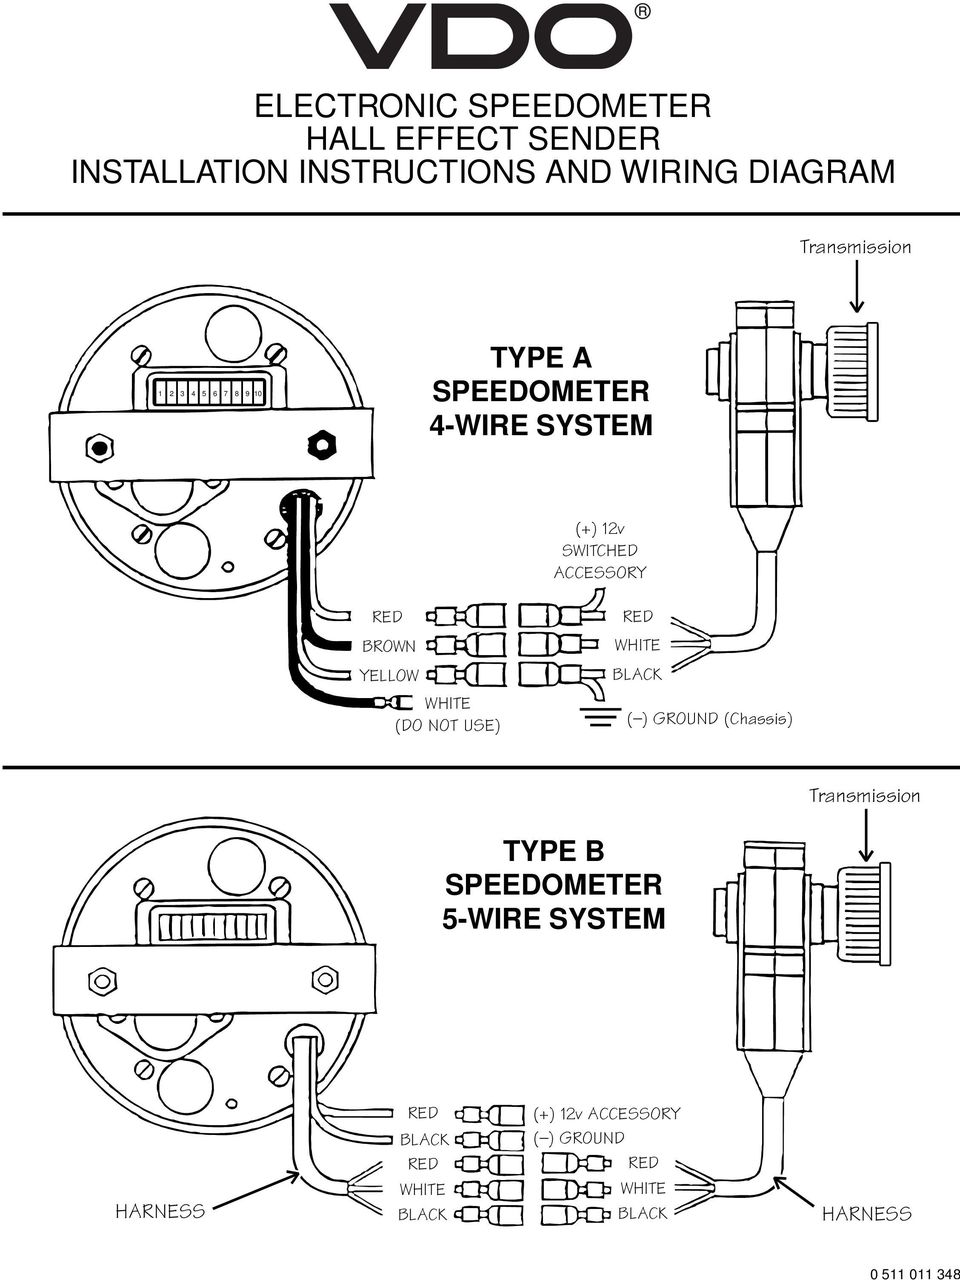 hight resolution of vdo electronic speedometer hall effect sender installation rh docplayer net vdo electronic speedometer wiring diagram vdo